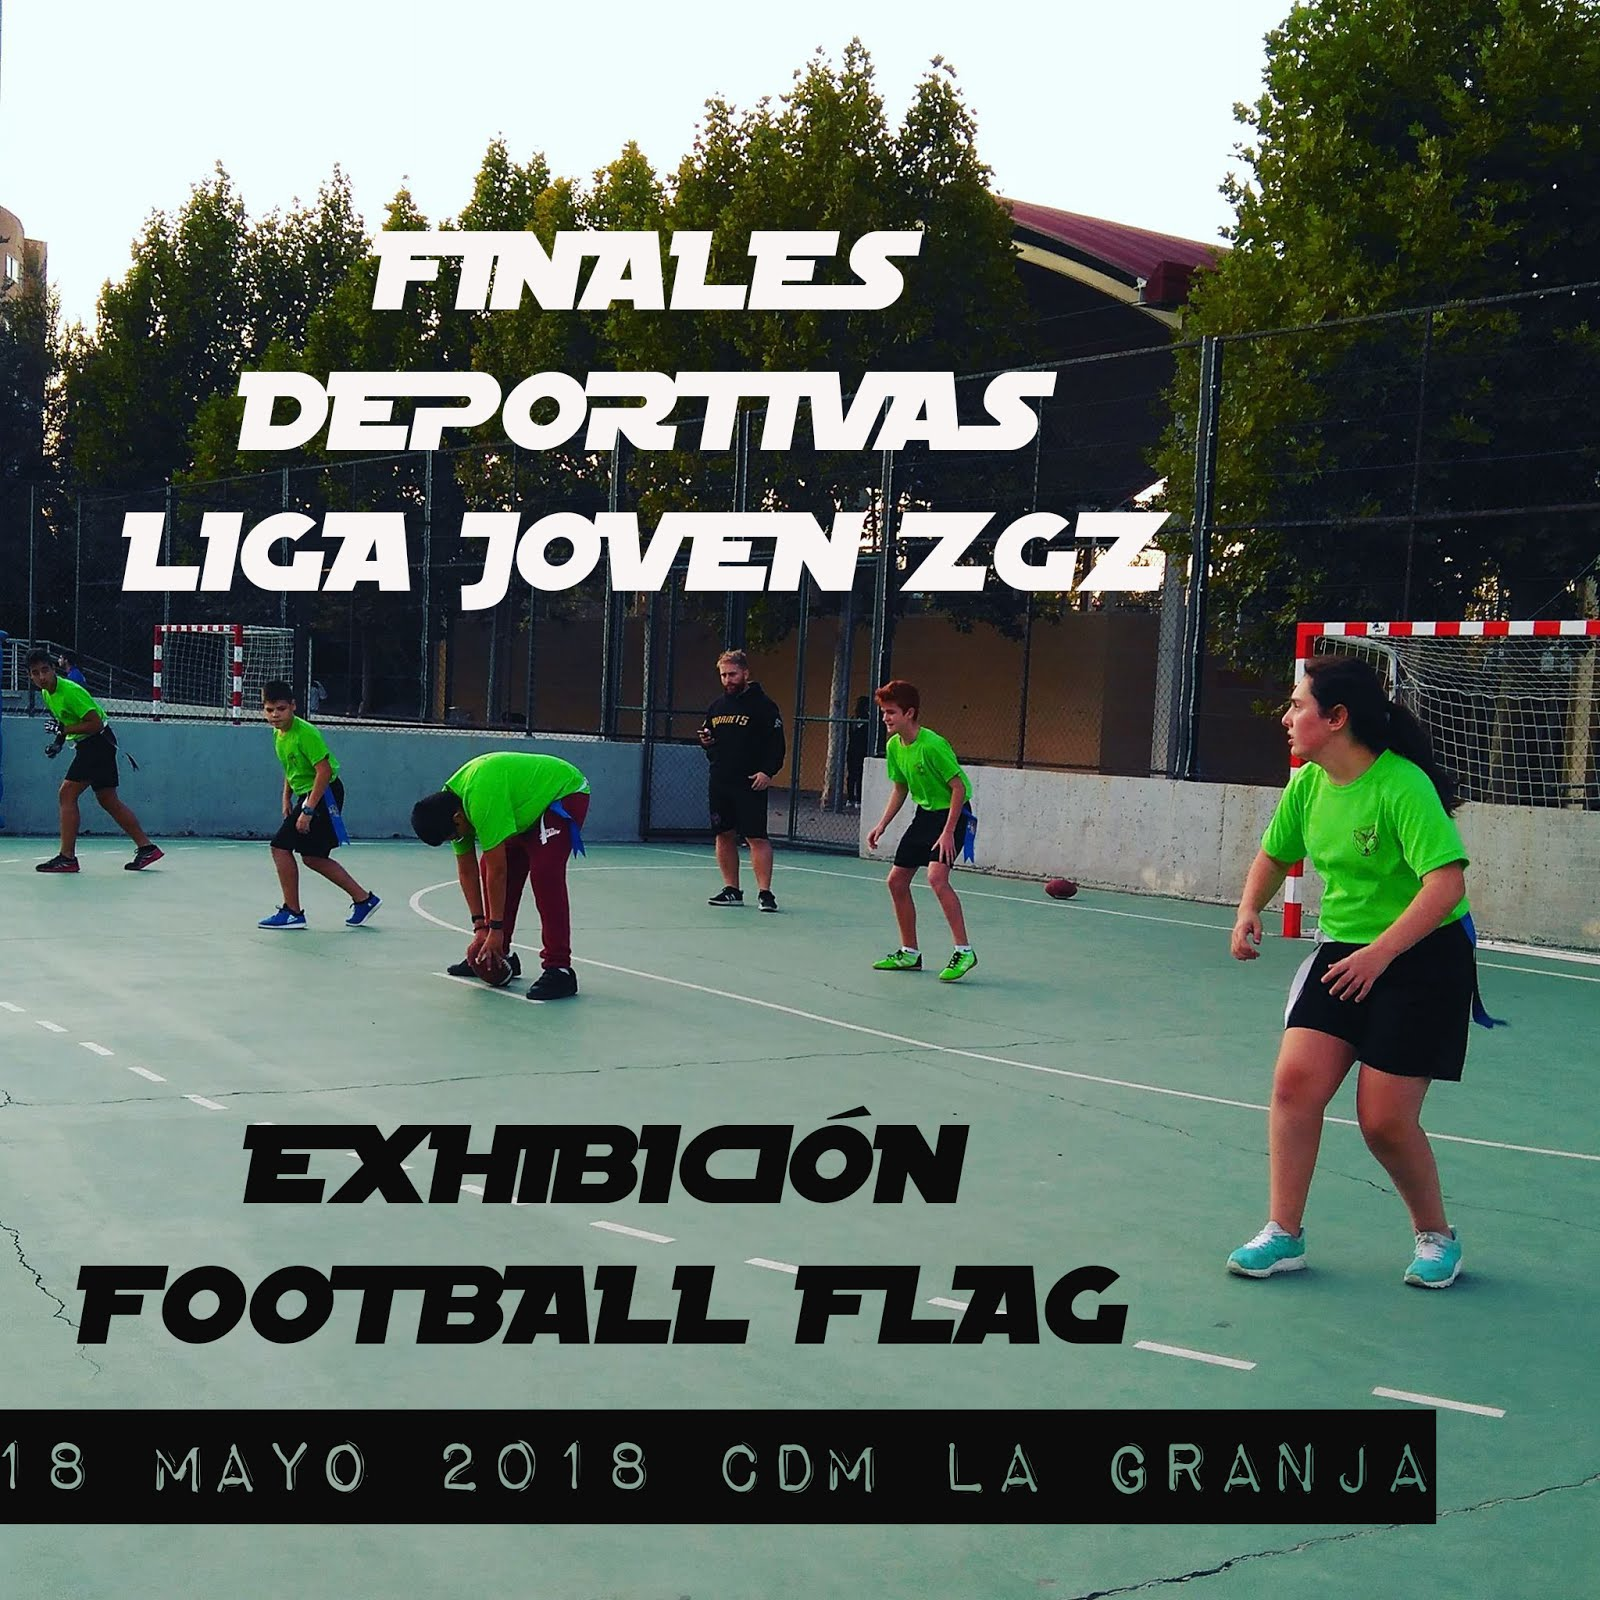 EXHIBICIÓN FOOTBALL FLAG 18/05/2018